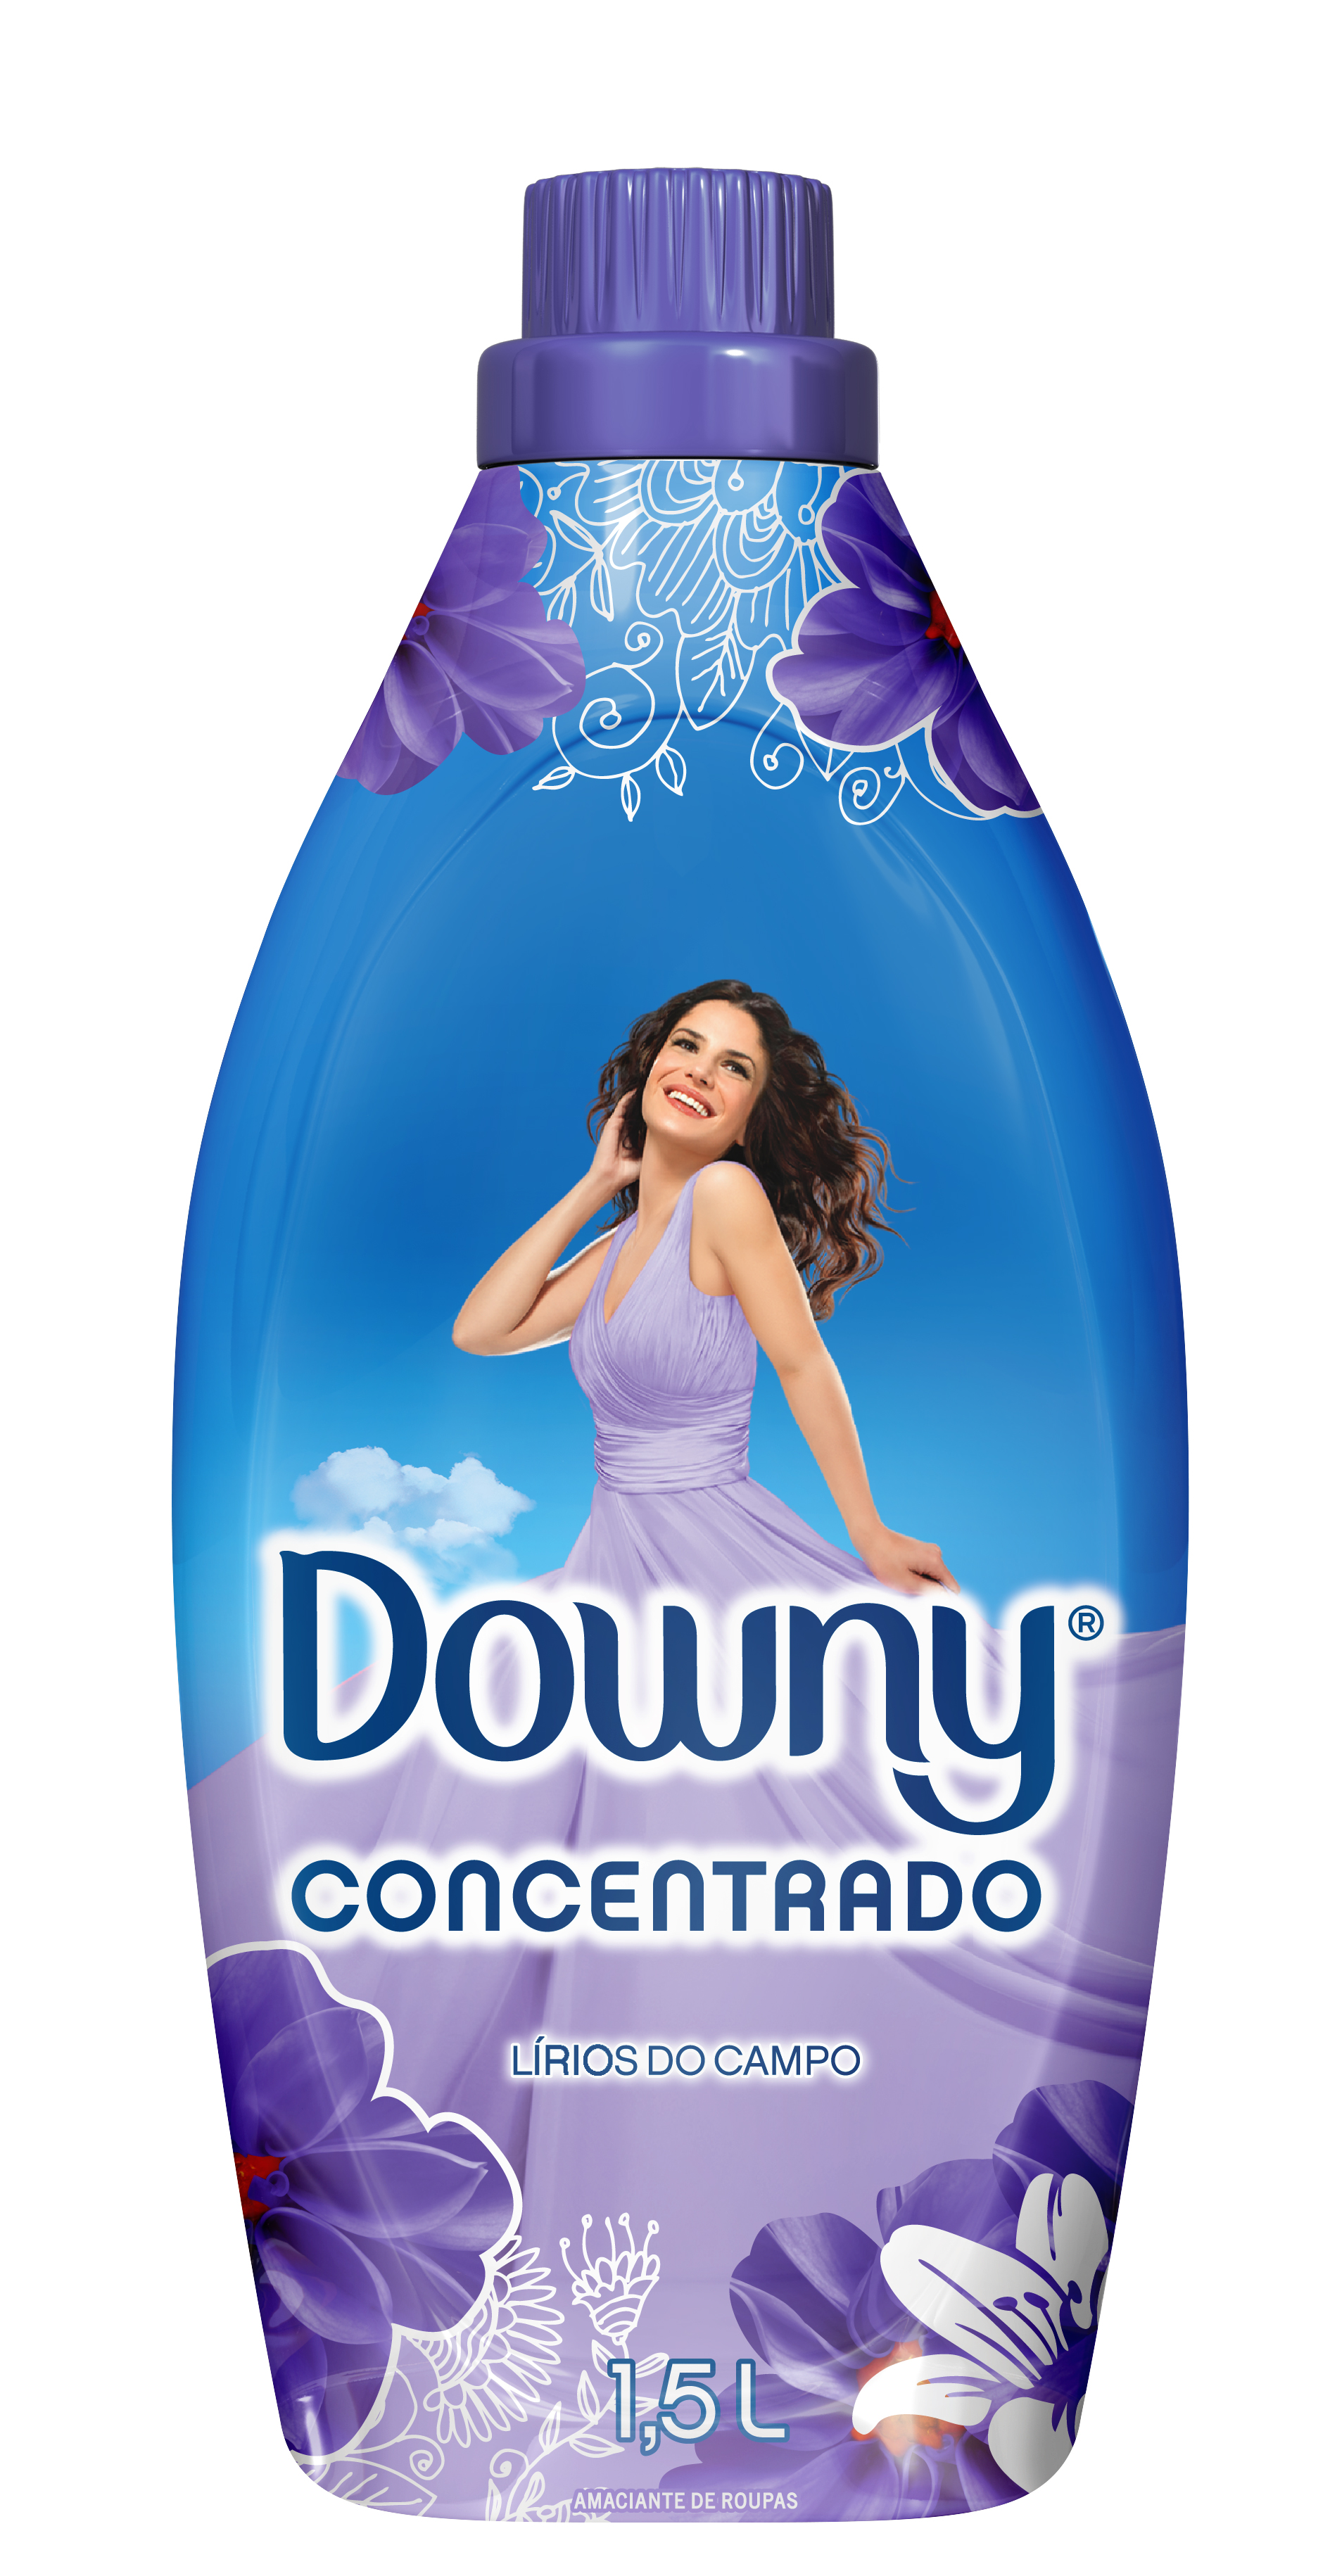 Amaciante Concentrado Downy Lírios do Campo 1,5L